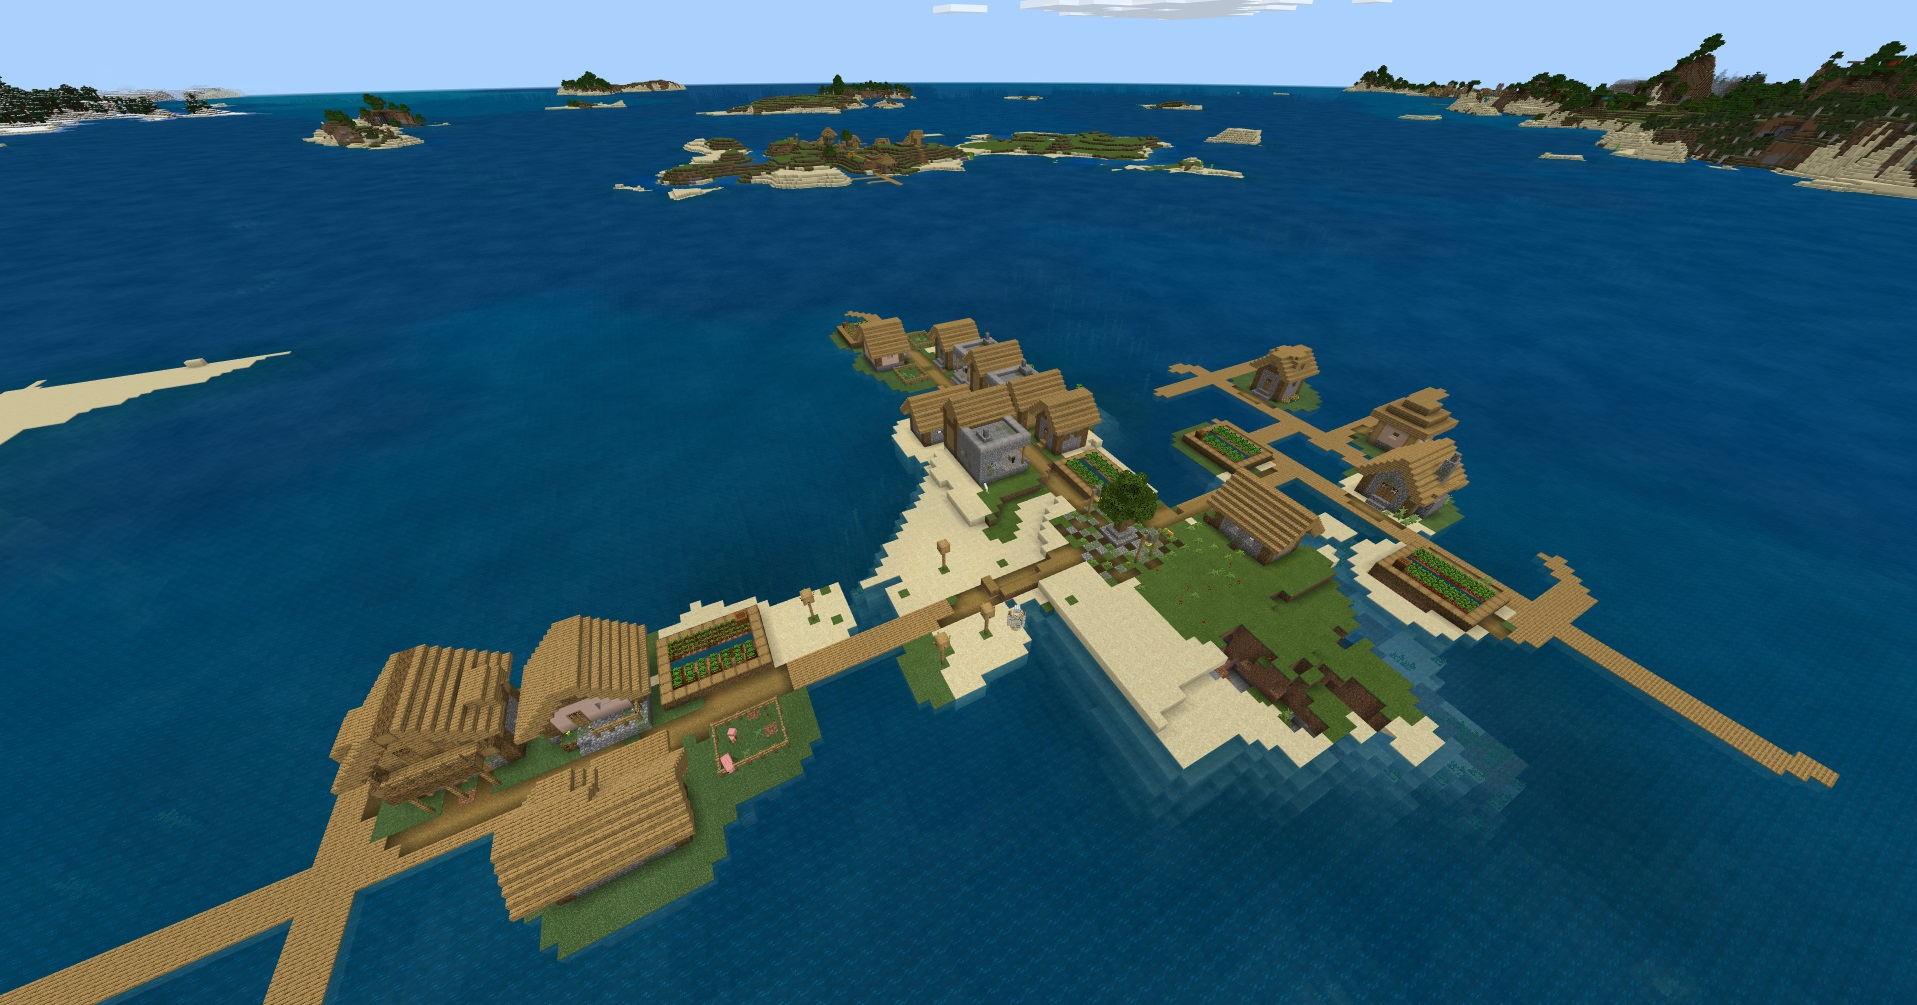 Minecraft bedrock seed - island village - A village on a very small island from a bird's eye view with another village on an adjacent island.